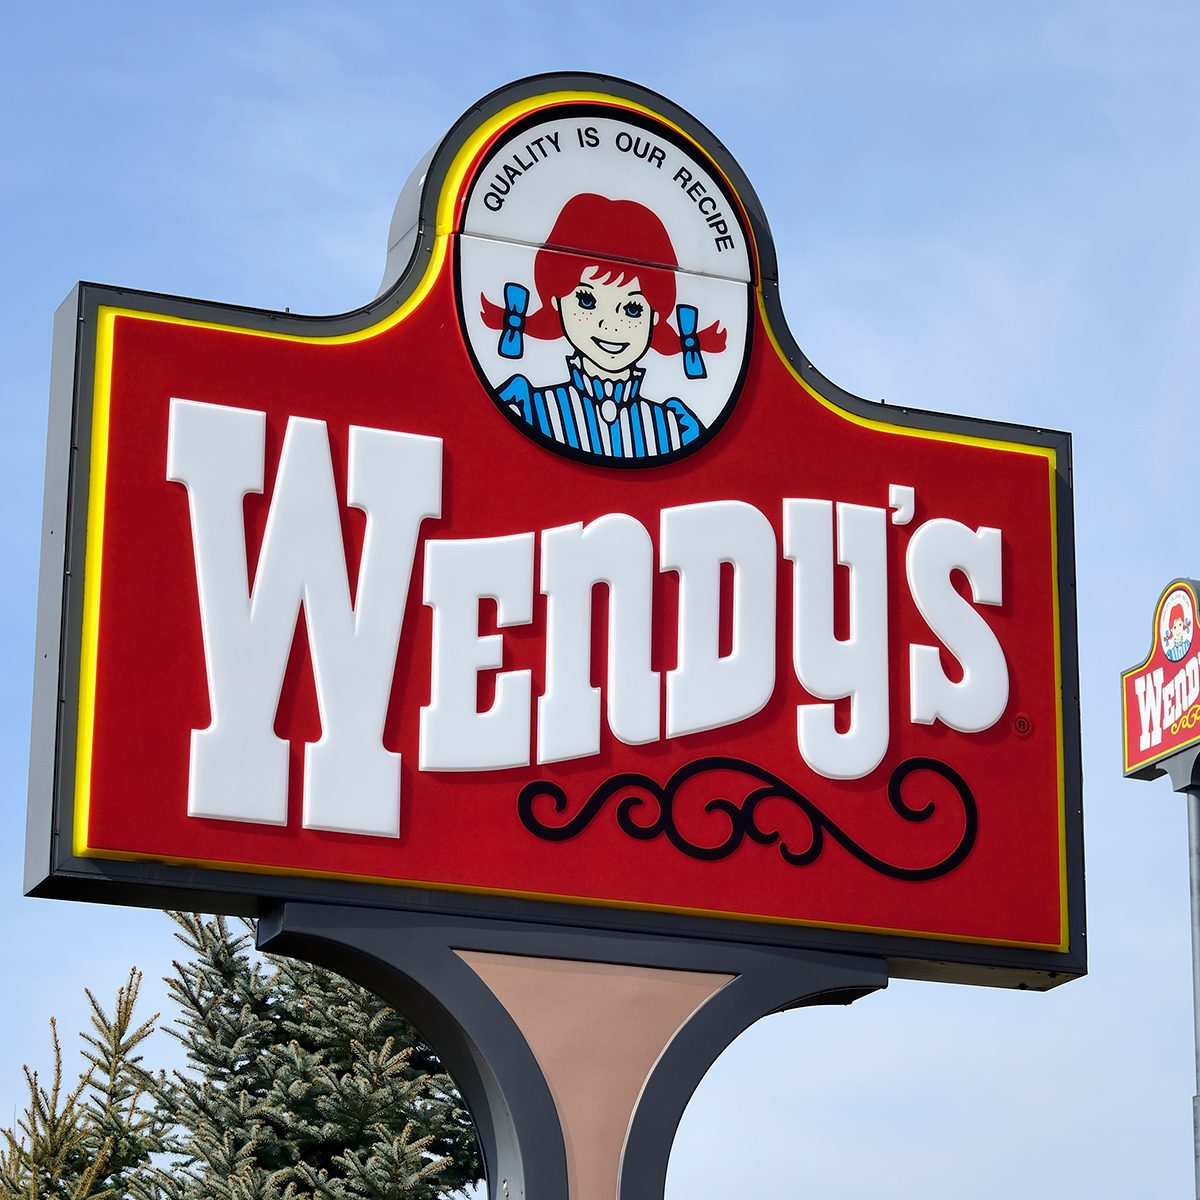 """Clio, Michigan, USA - March 7, 2012: The Wendy's location in Clio, Michigan. Founded in 1969 by Dave Thomas, Wendy's is a chain of fast food restaurants with over 6,600 locations in the US and abroad."""